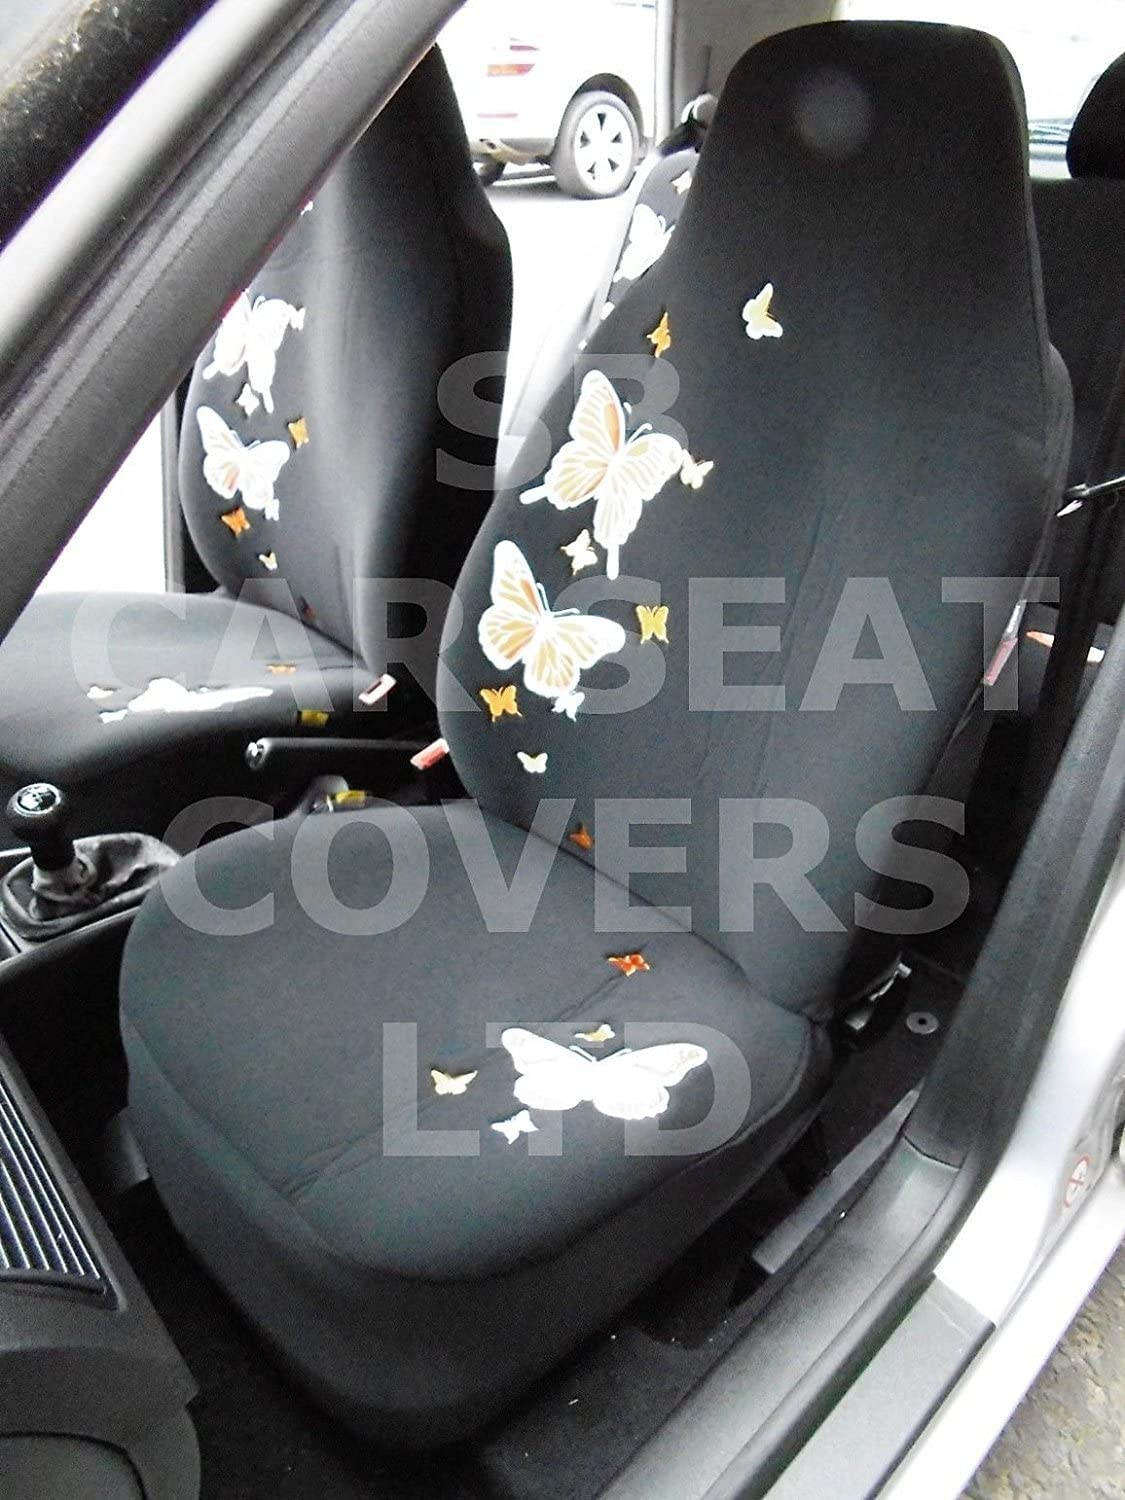 ROSSINI HIGH BACK SEAT COVERS r SUITABLE FOR TOYOTA AYGO CAR ORANGE BUTTERFLY